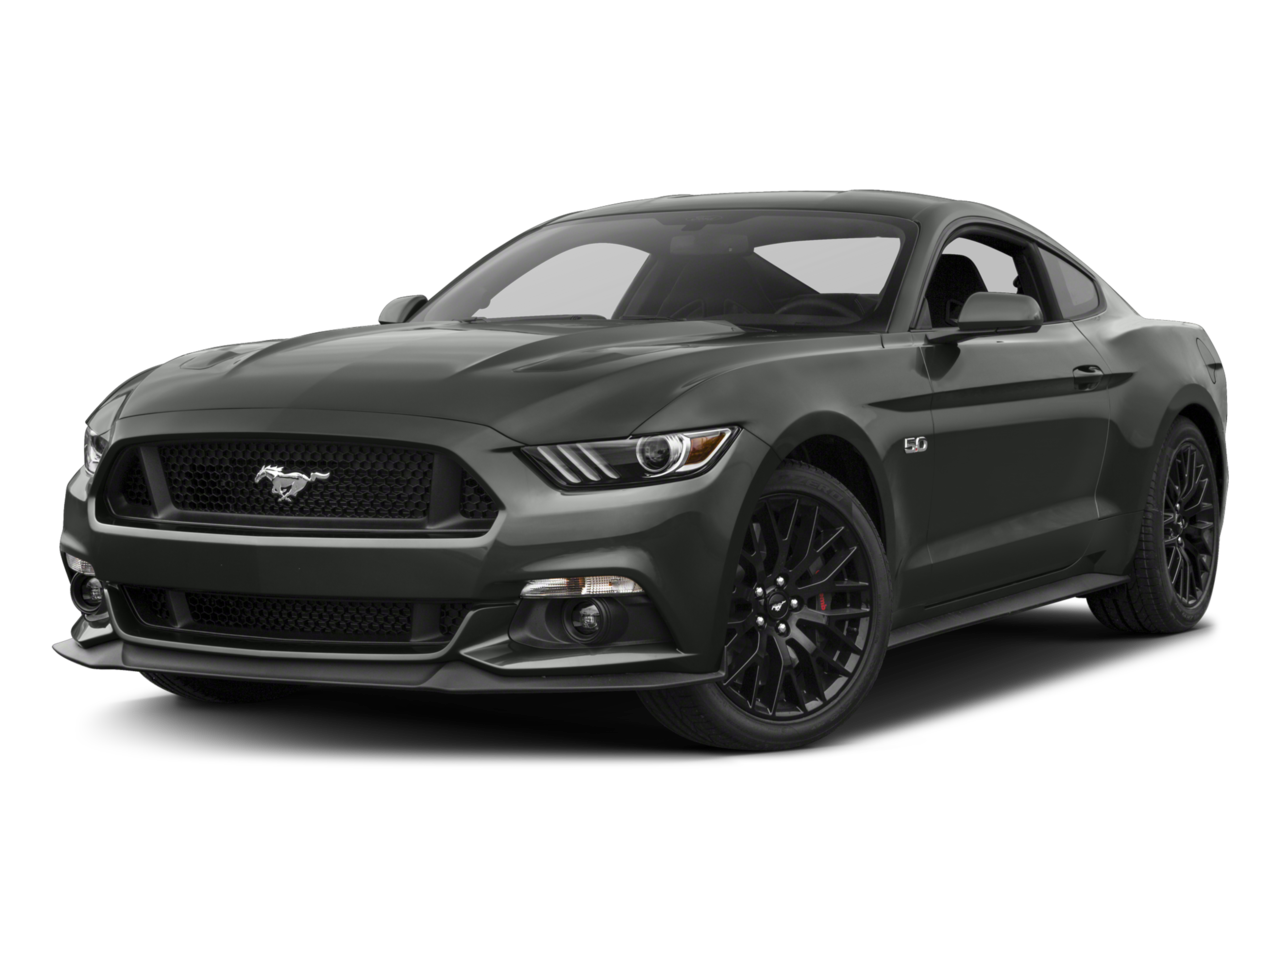 2017 ford mustang. Black Bedroom Furniture Sets. Home Design Ideas